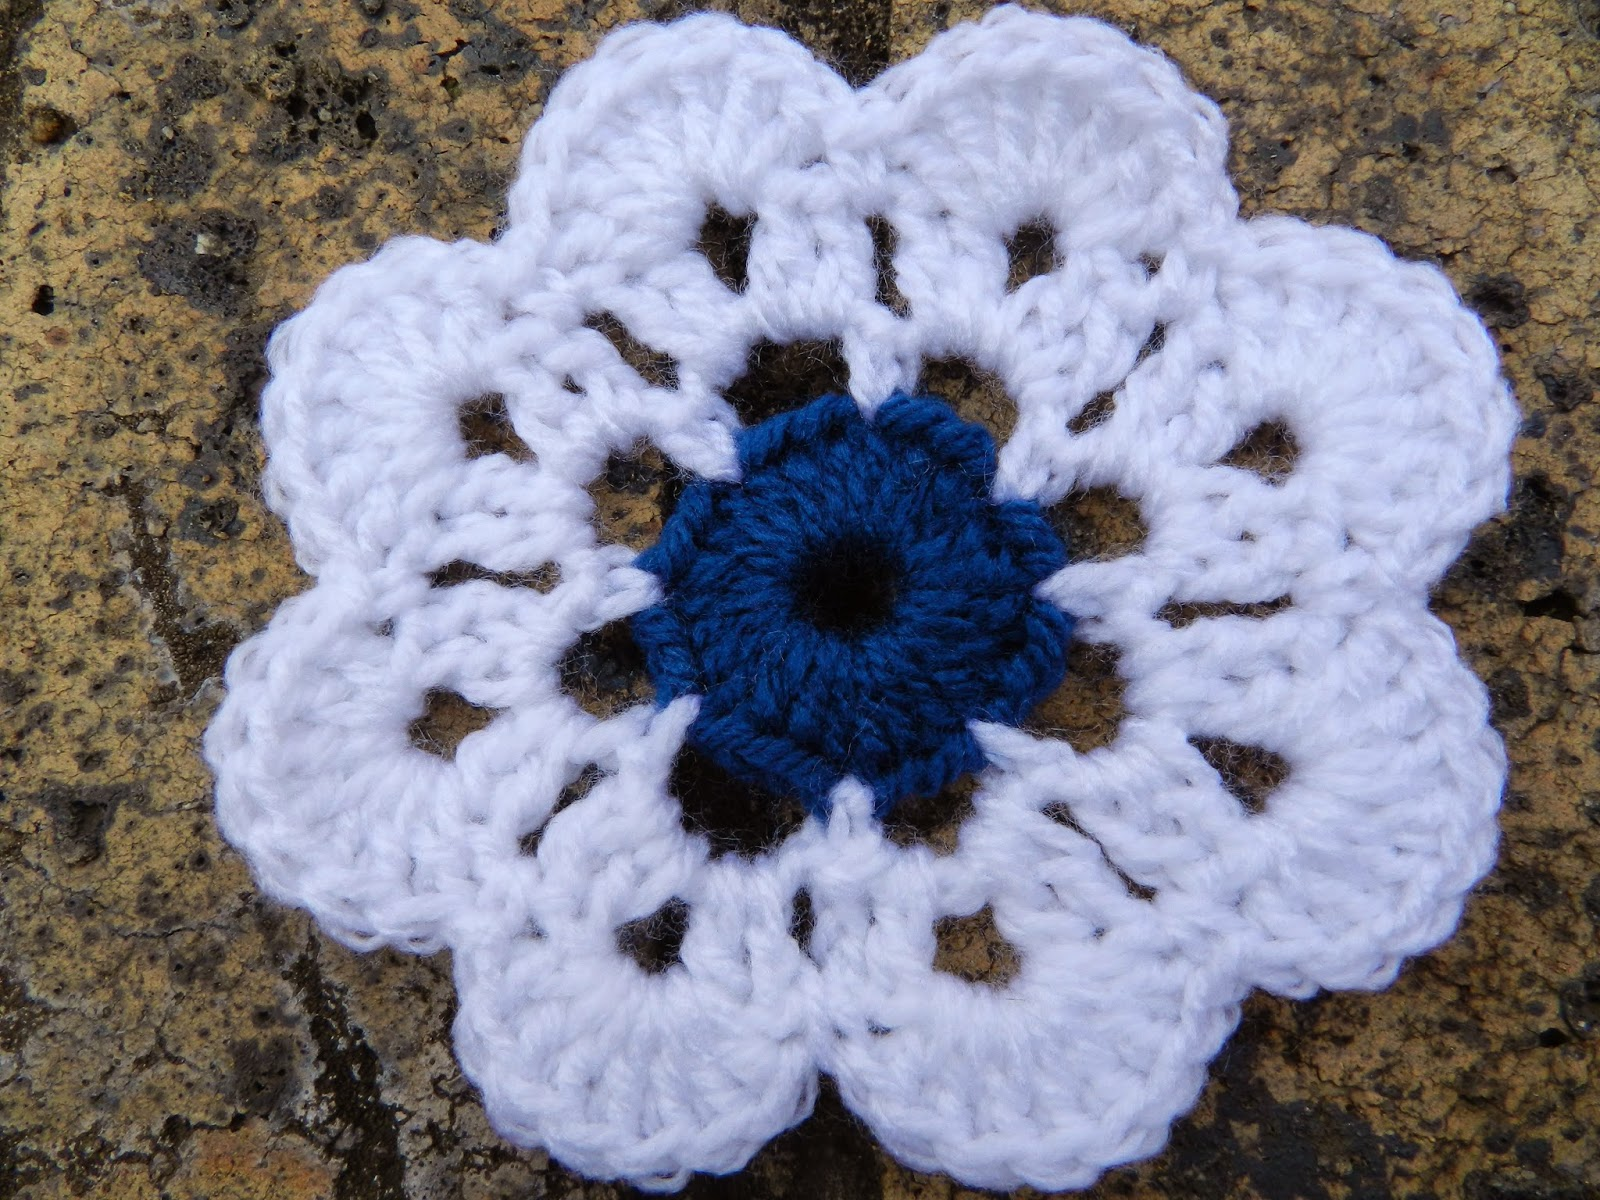 Sunshine and a sewing basket maybelle flower mandala pattern that gives us a stitch count of 24hdc including the 2ch i wanted a smaller circle to start the flower proceed with rows 2 row 4 as per pattern bankloansurffo Images